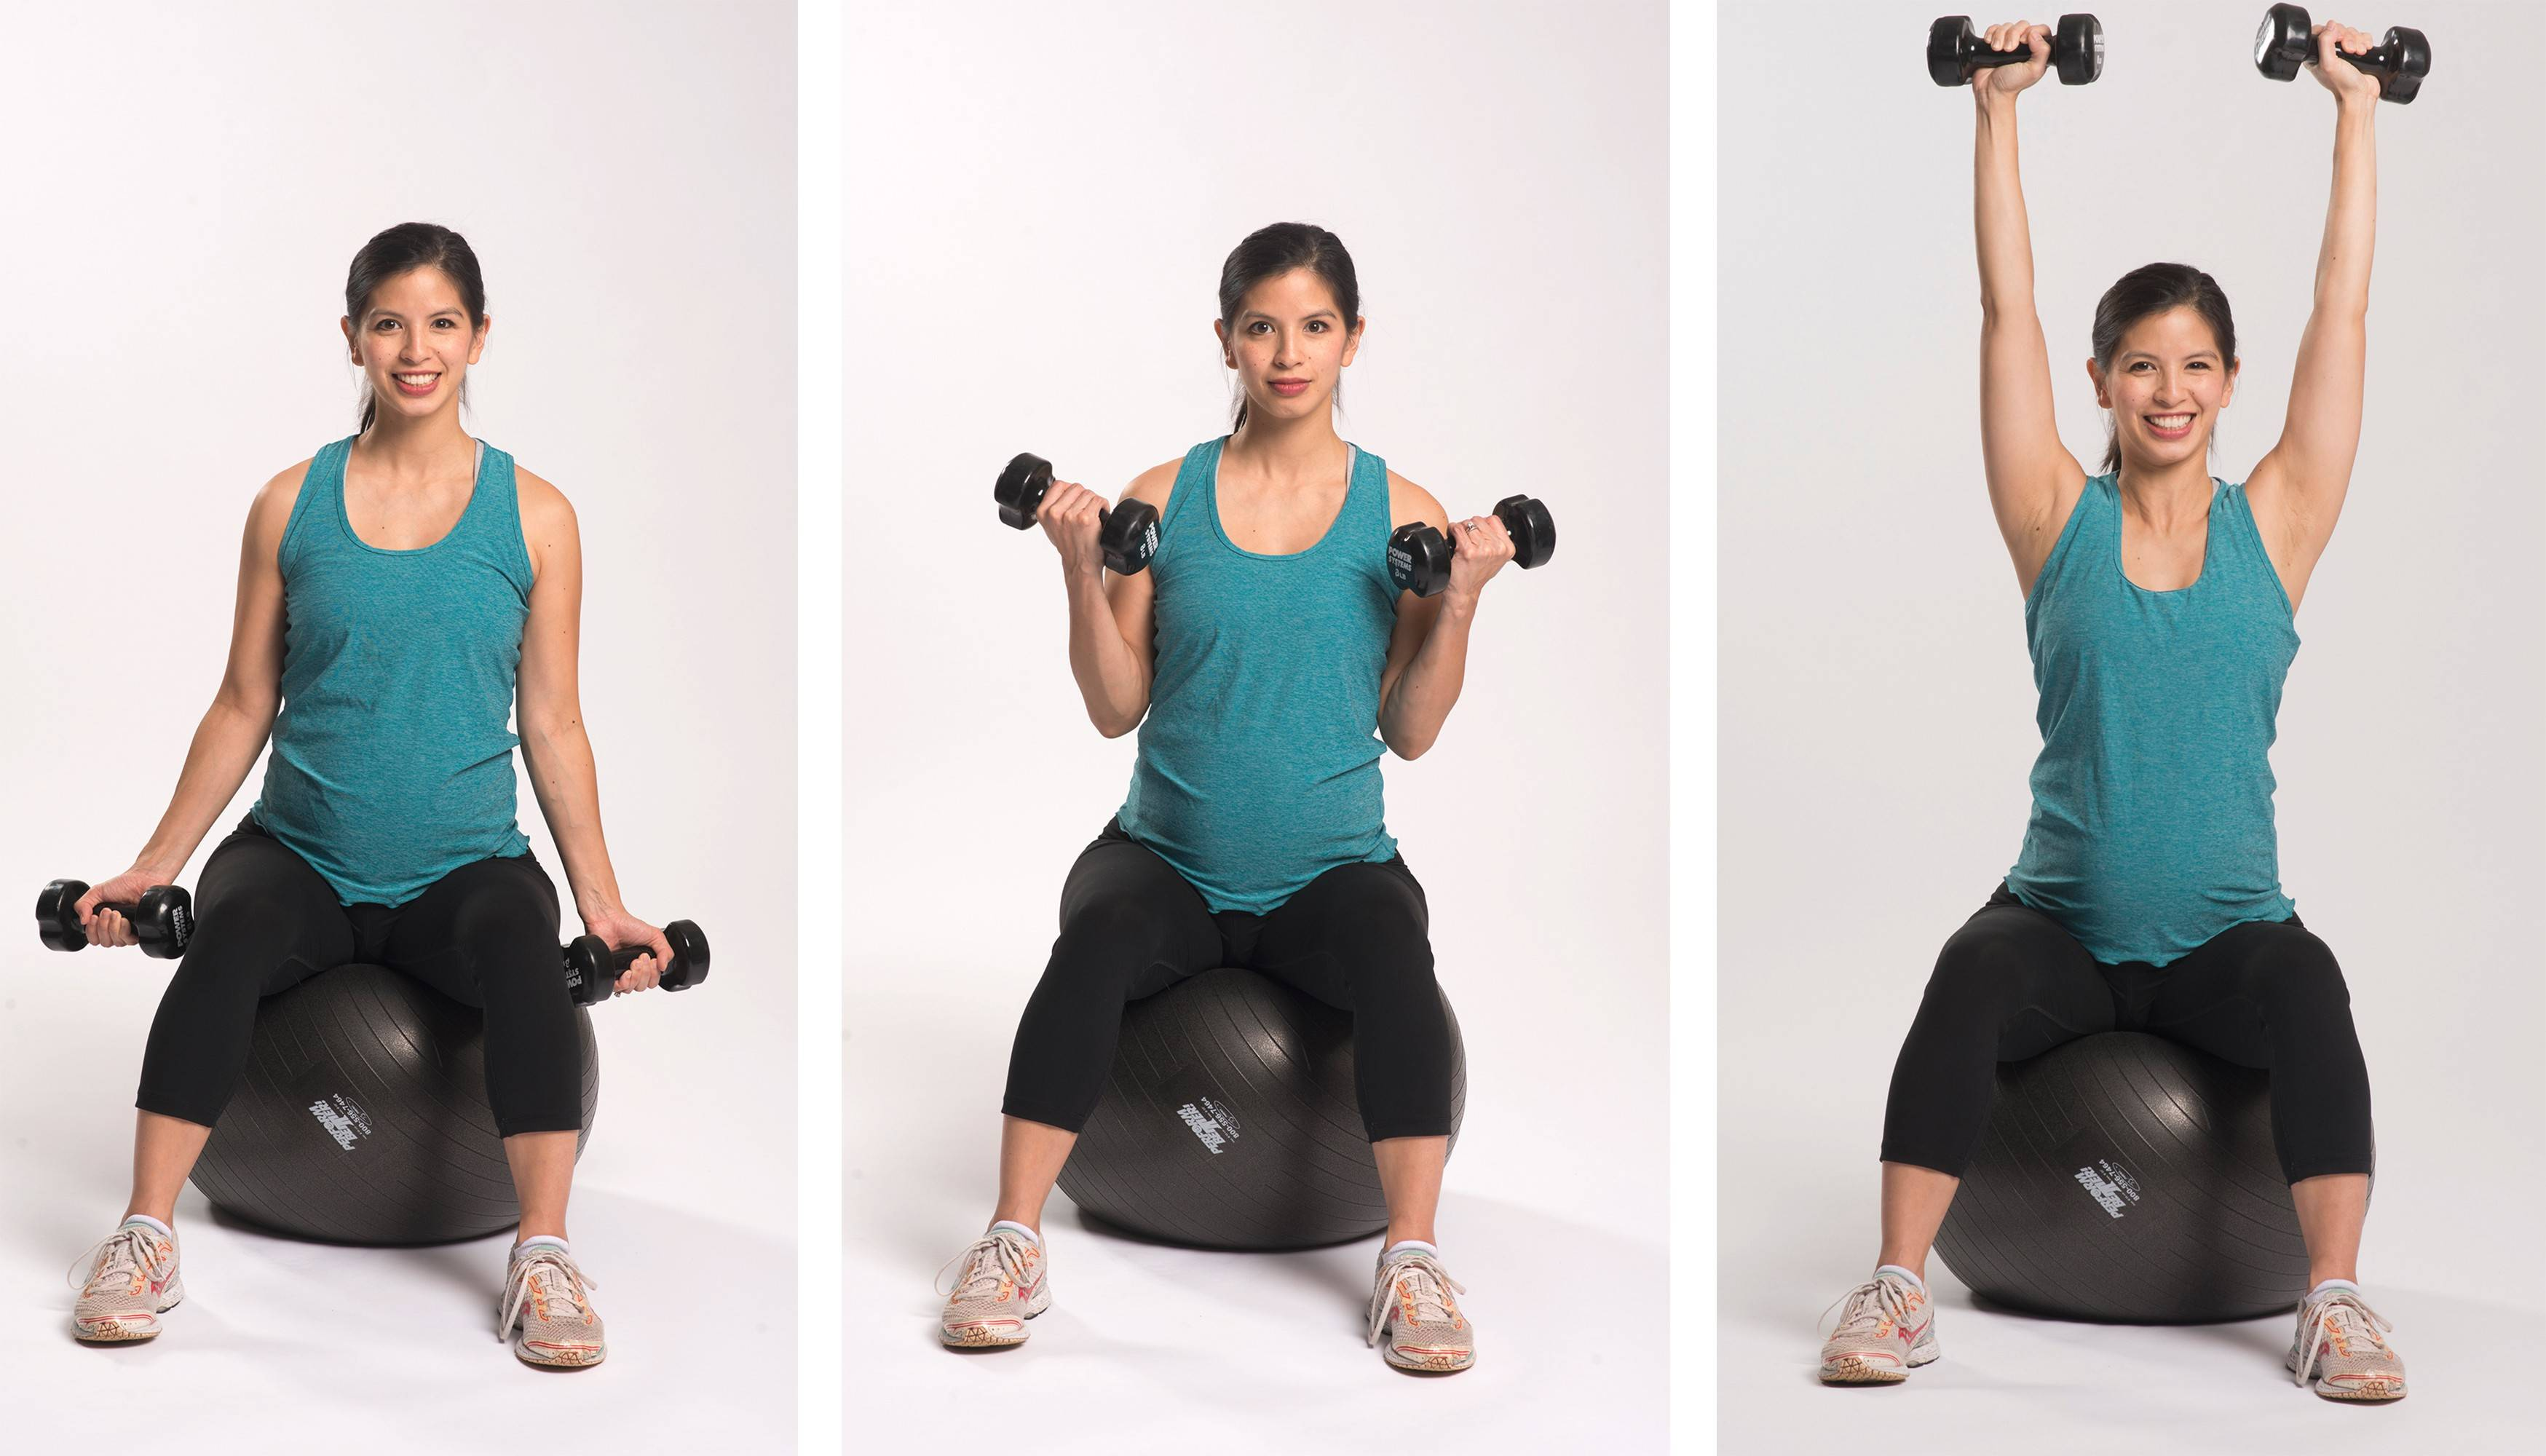 Another example of a pregnancy workout is arm curls while sitting on a stability ball: Keep palms facing forward, with eight- to 10-pound dumbbells in each hand. Lift the weight toward your shoulders, with the elbows tucked to the sides. Exhale as you bring the weights up on a count of three. Then bring the weights back down with the same count of three. Repeat for three rounds of 10 to 12 repetitions.